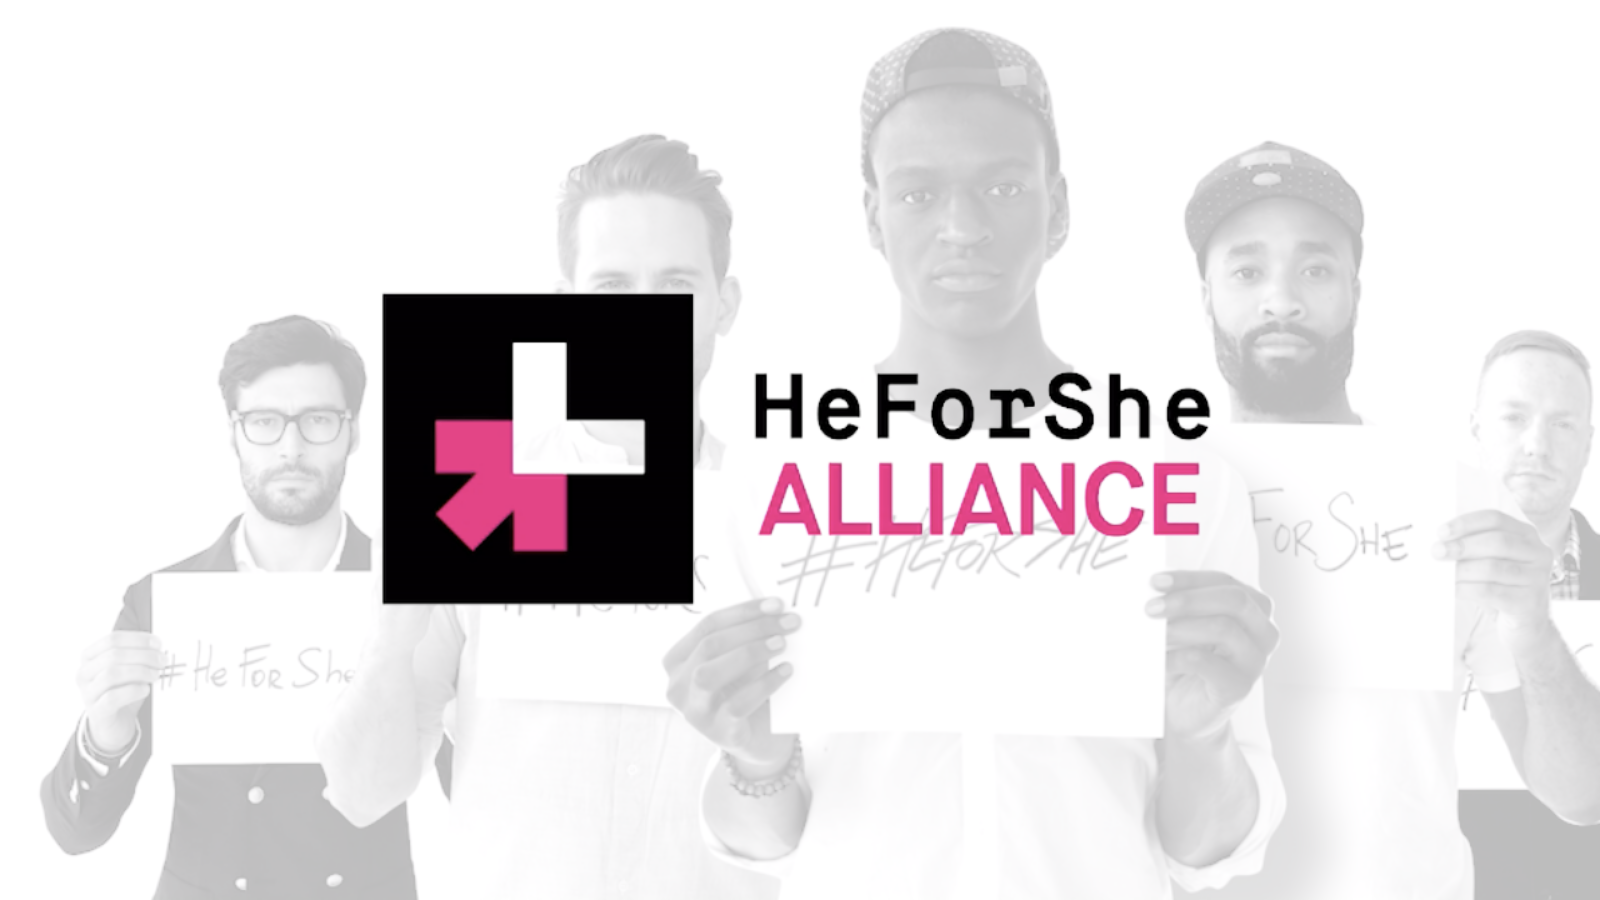 heforshe alliance